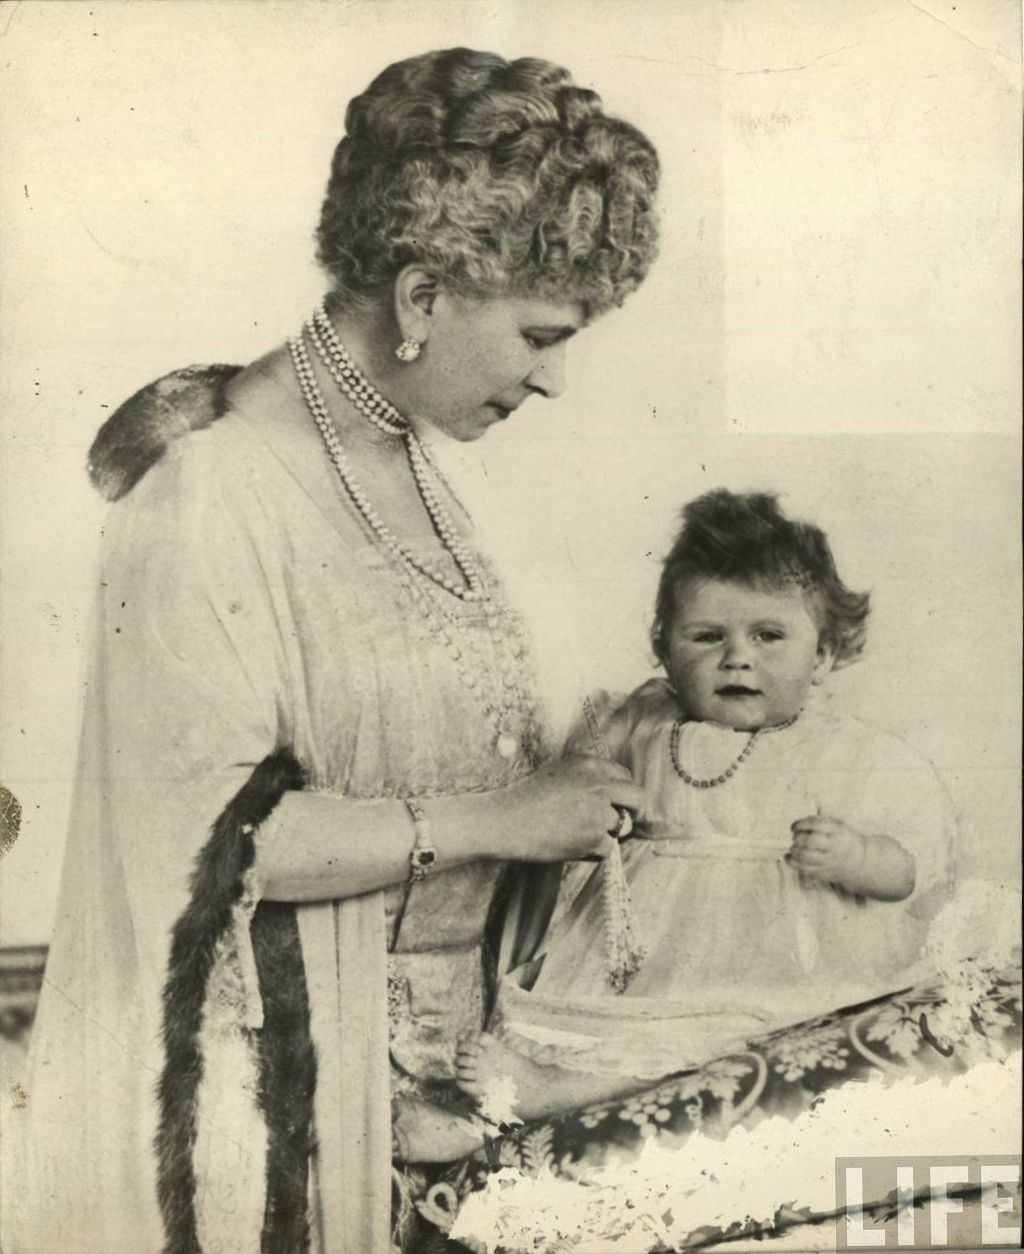 Queen Mary with her granddaughter, Princess Elizabeth, c